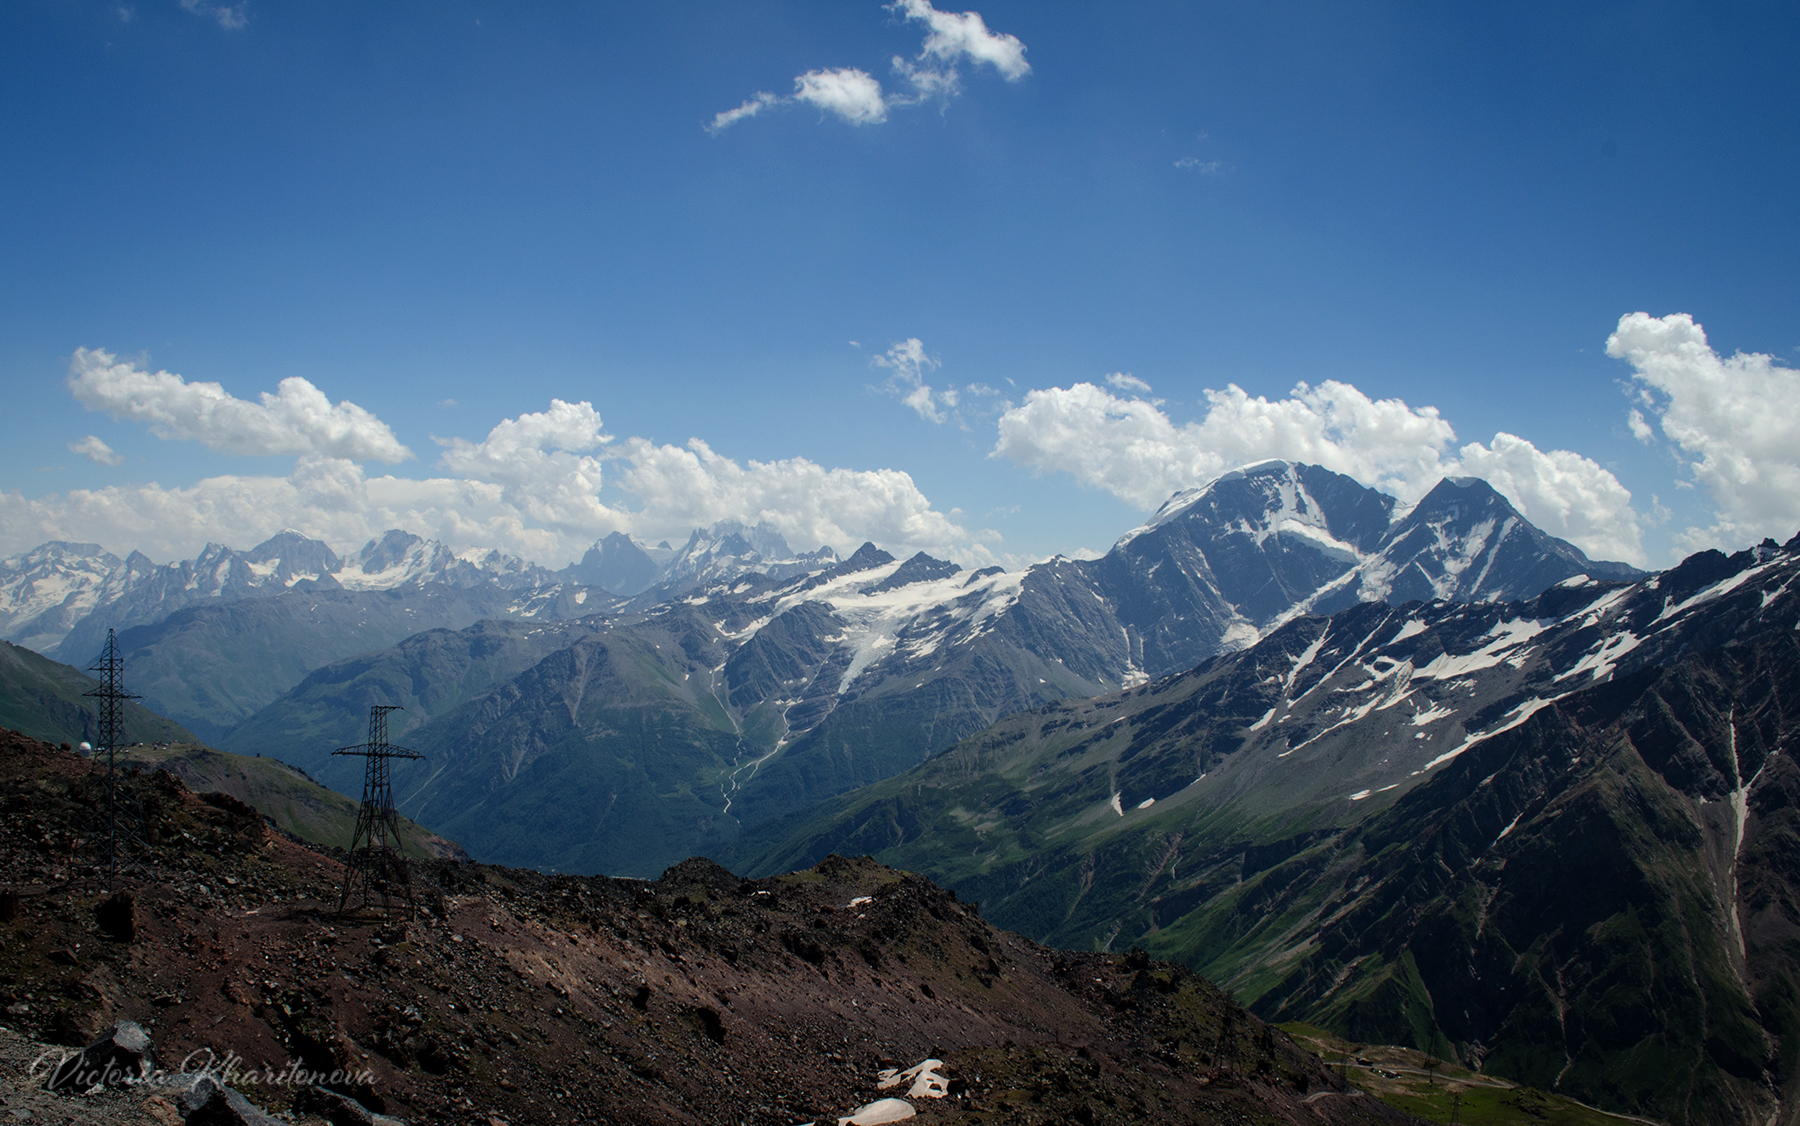 View from Elbrus mountain